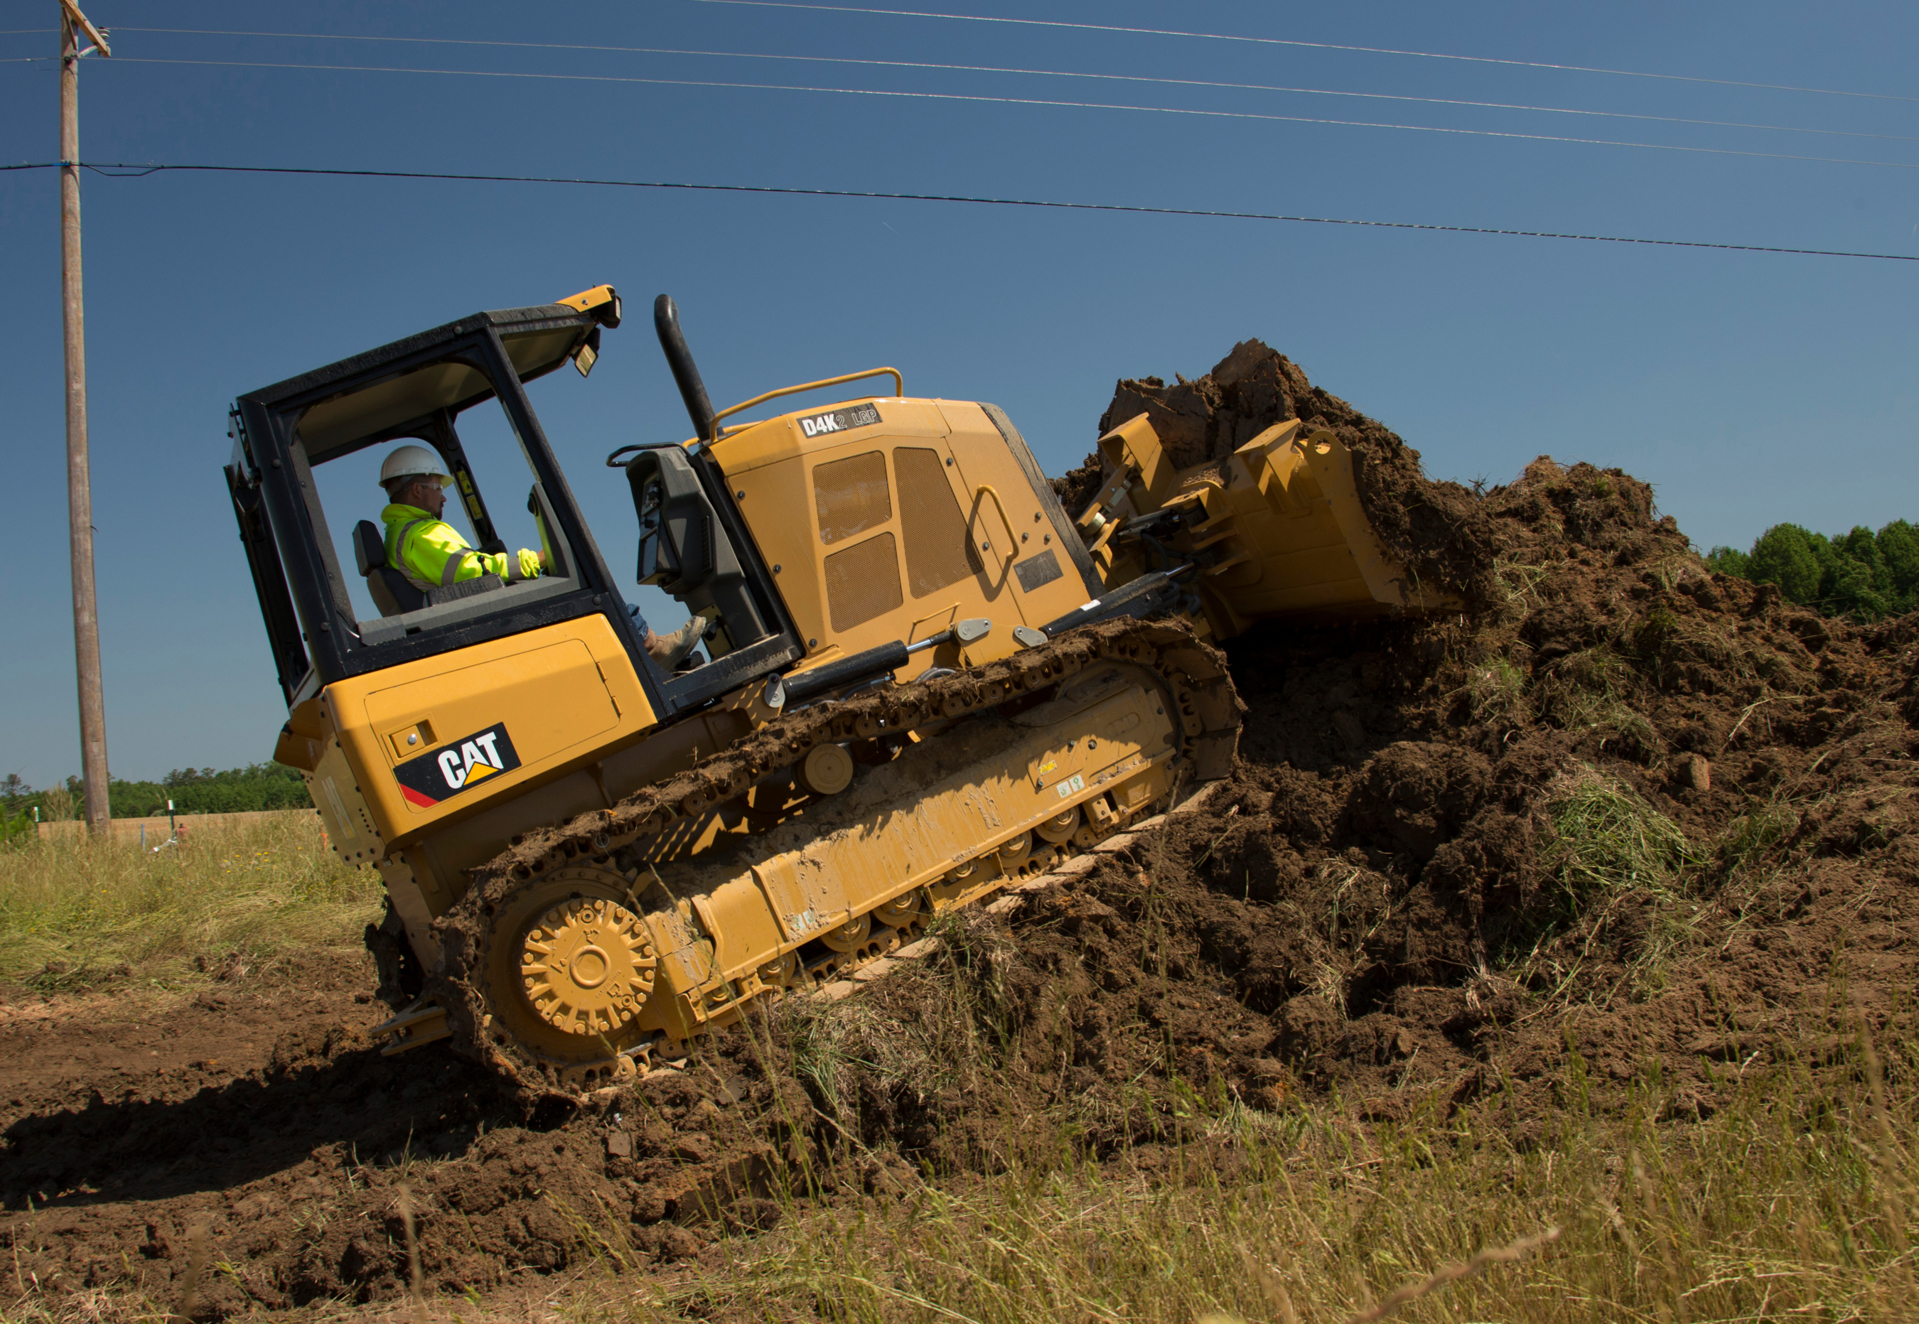 Cat D4K2 T4f STTT in road construction application - C10291098.jpg